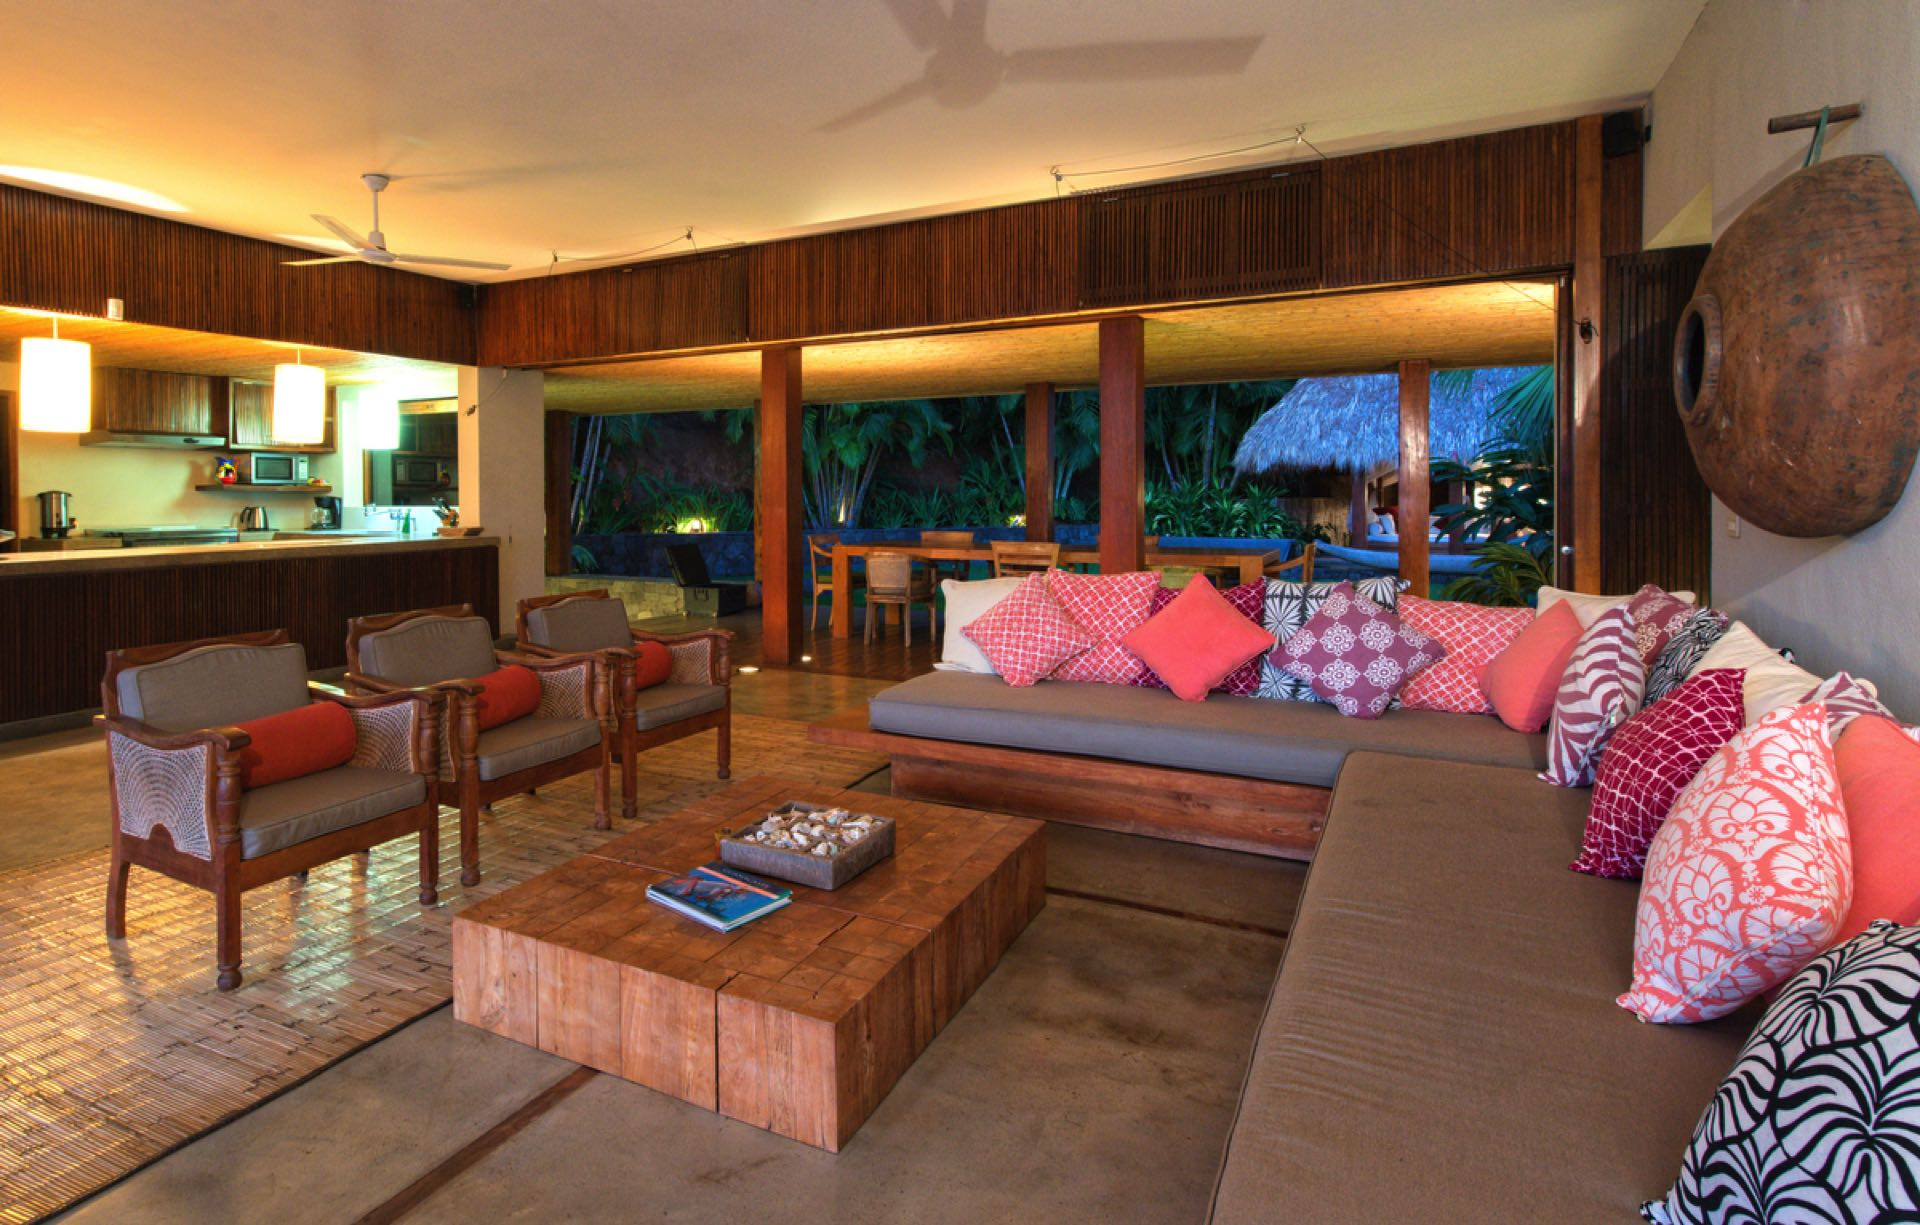 Spacious common area will accommodate your whole group